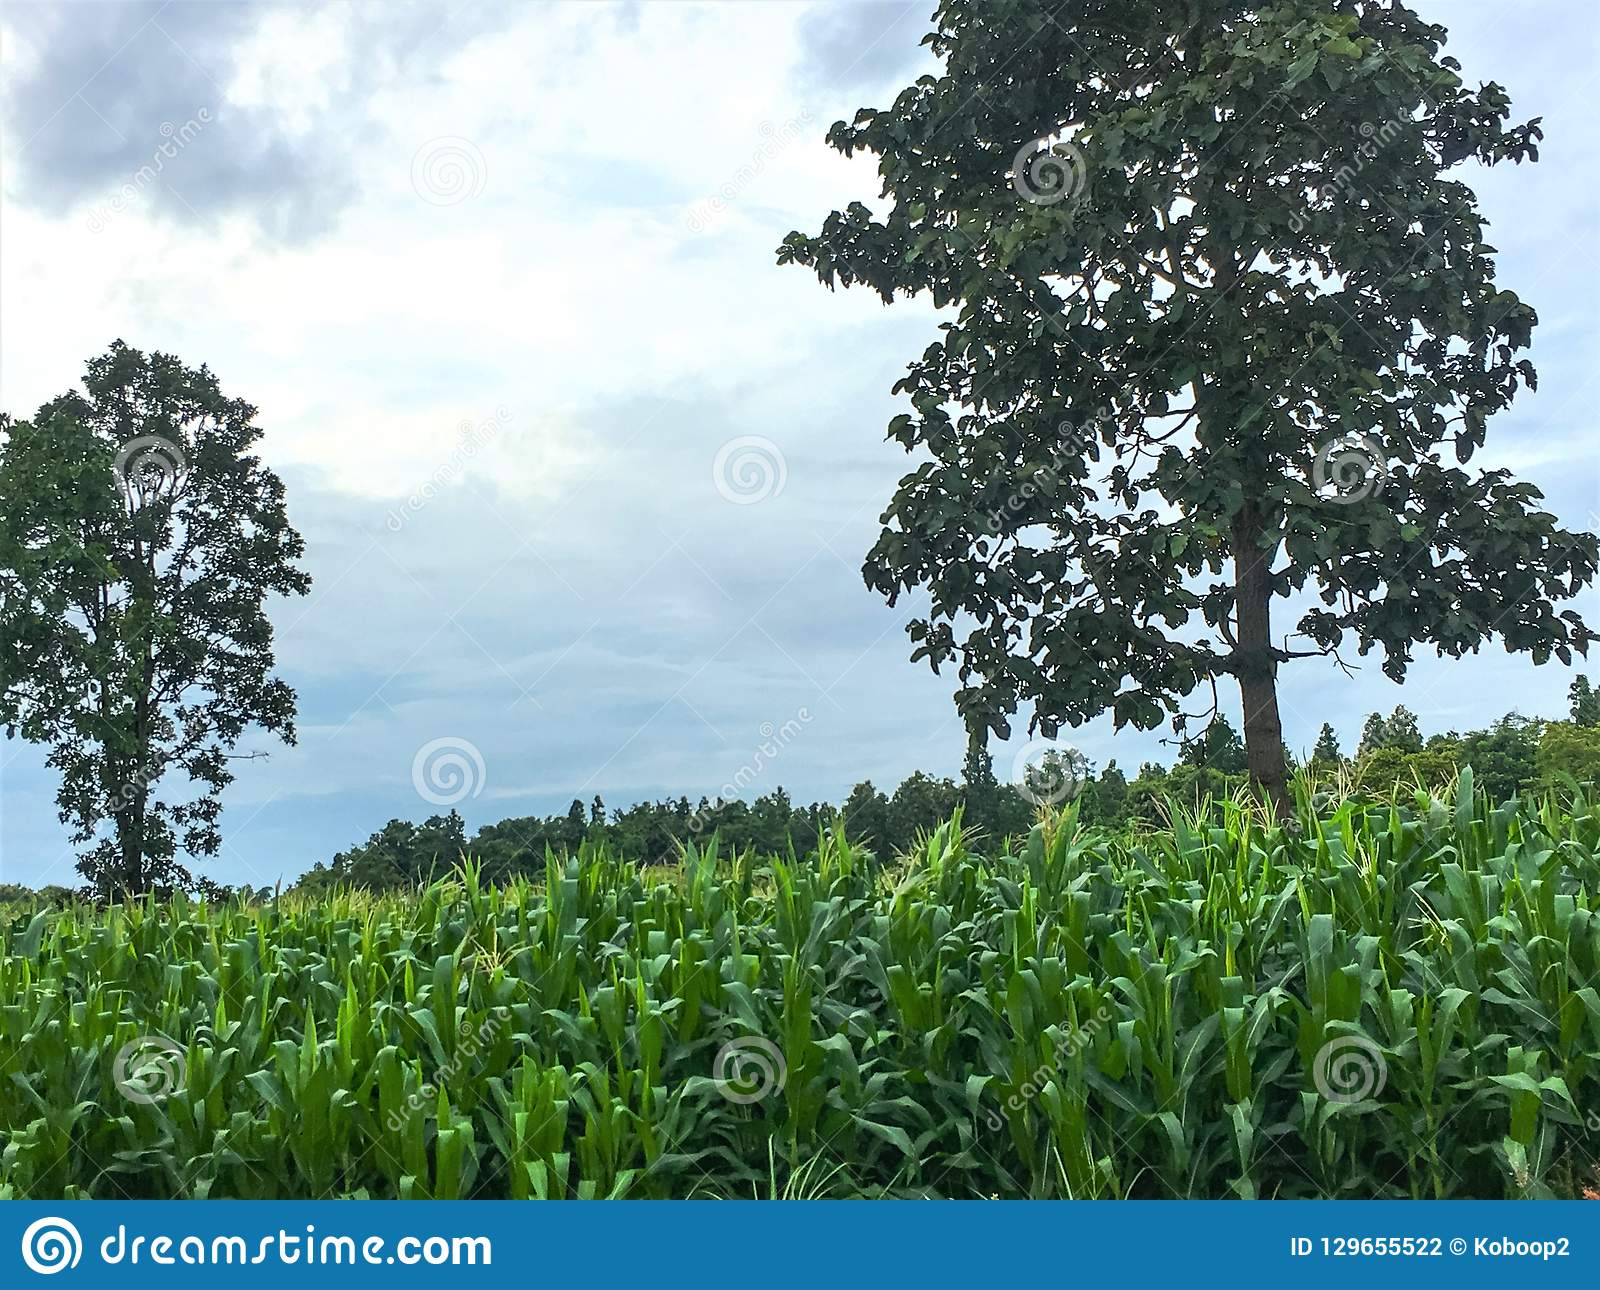 Green cornfields growing up in plantation